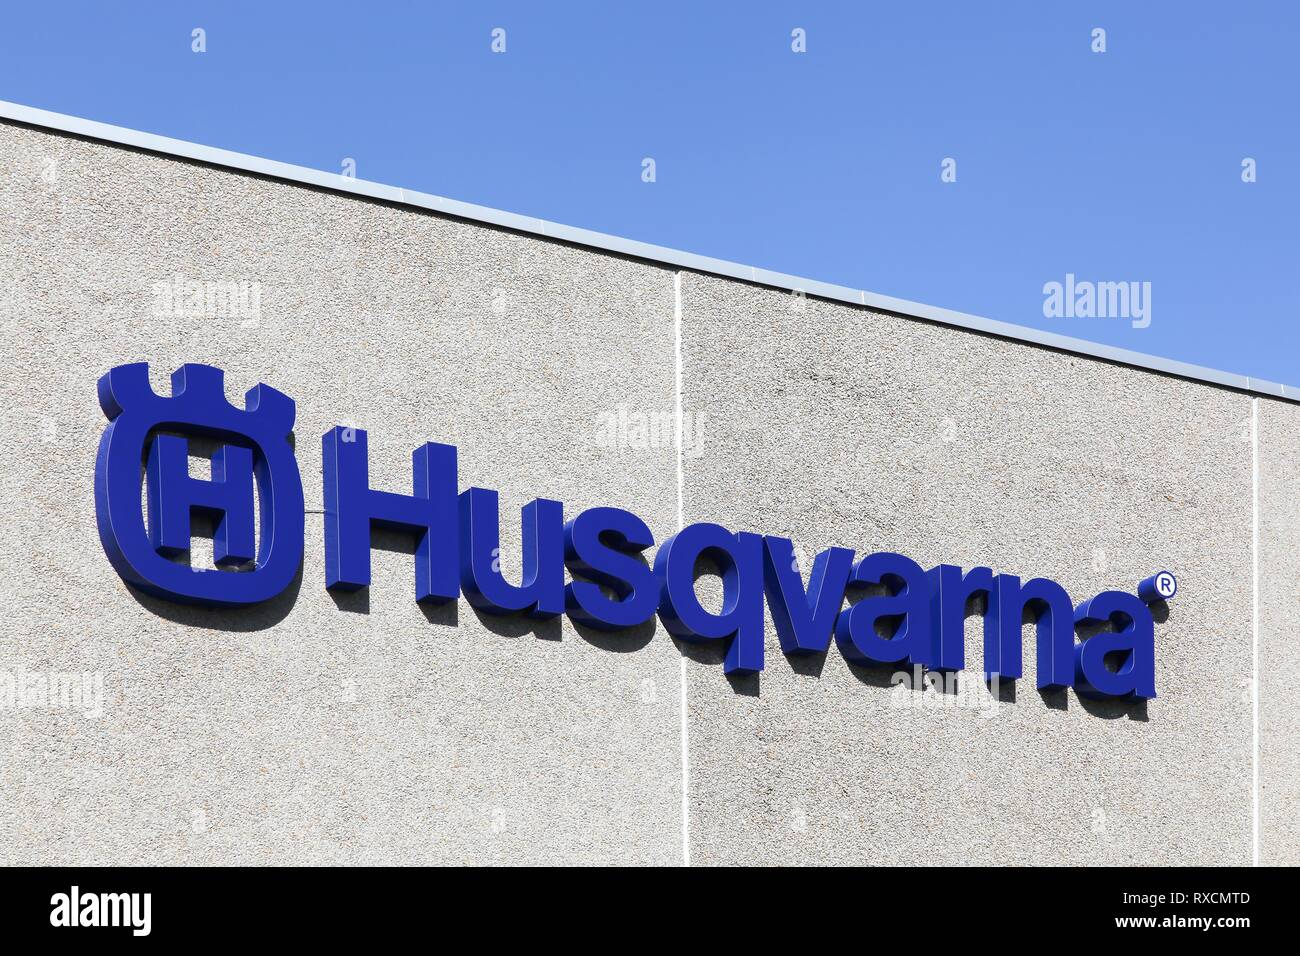 Randers, Denmark - May 5, 2018: Husqvarna logo on a facade. Husqvarna is swedish a manufacturer of robotic mowers, garden tractors and chainsaws - Stock Image